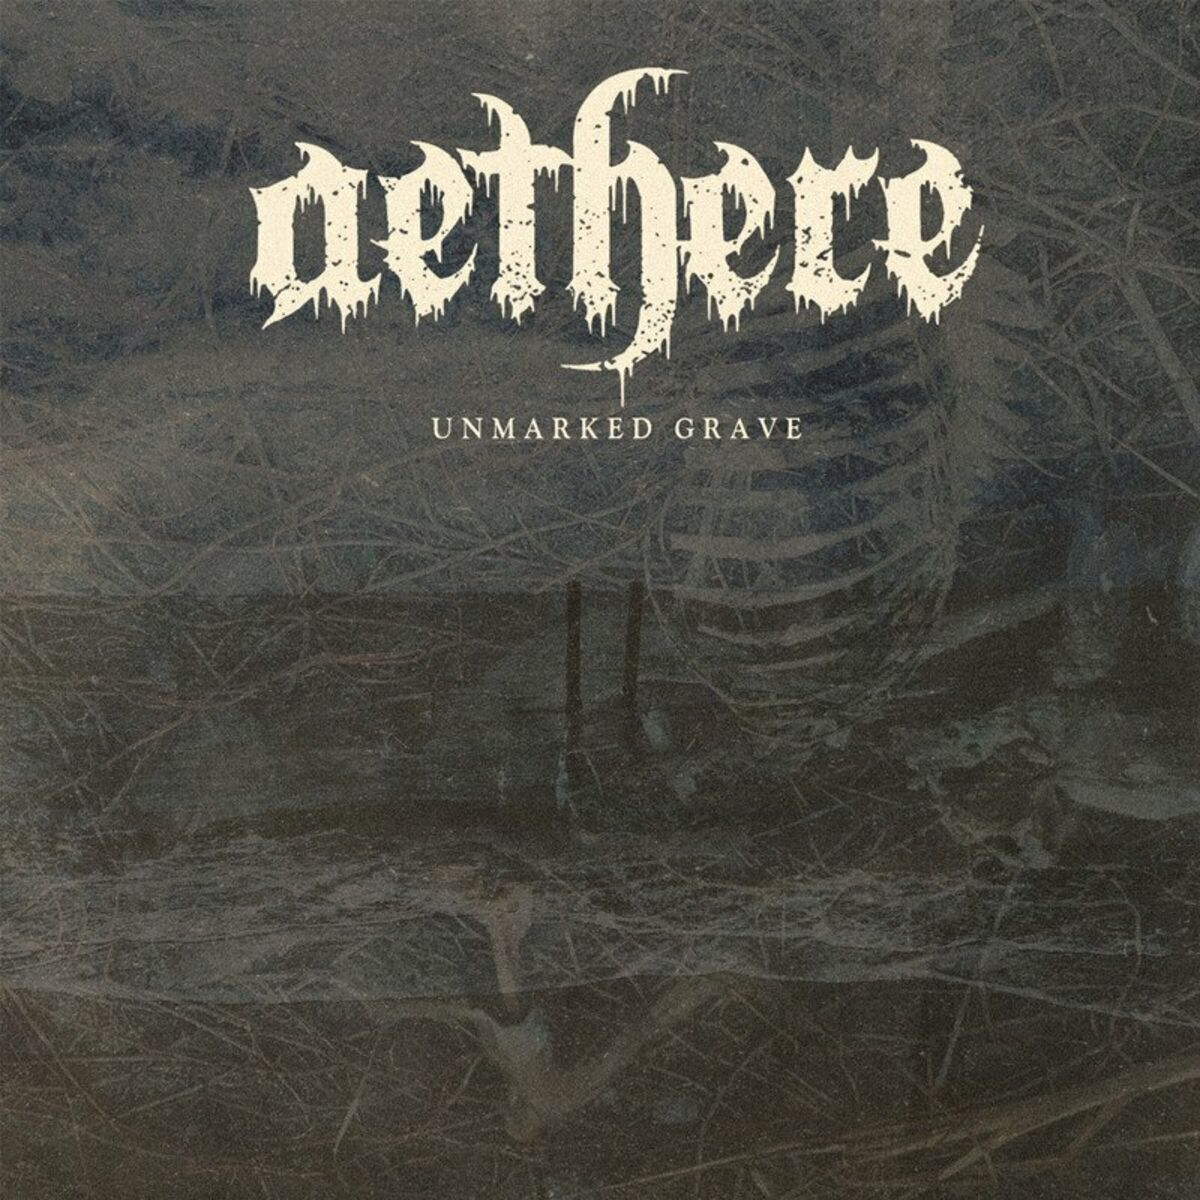 Aethere - Unmarked Grave [single] (2020)